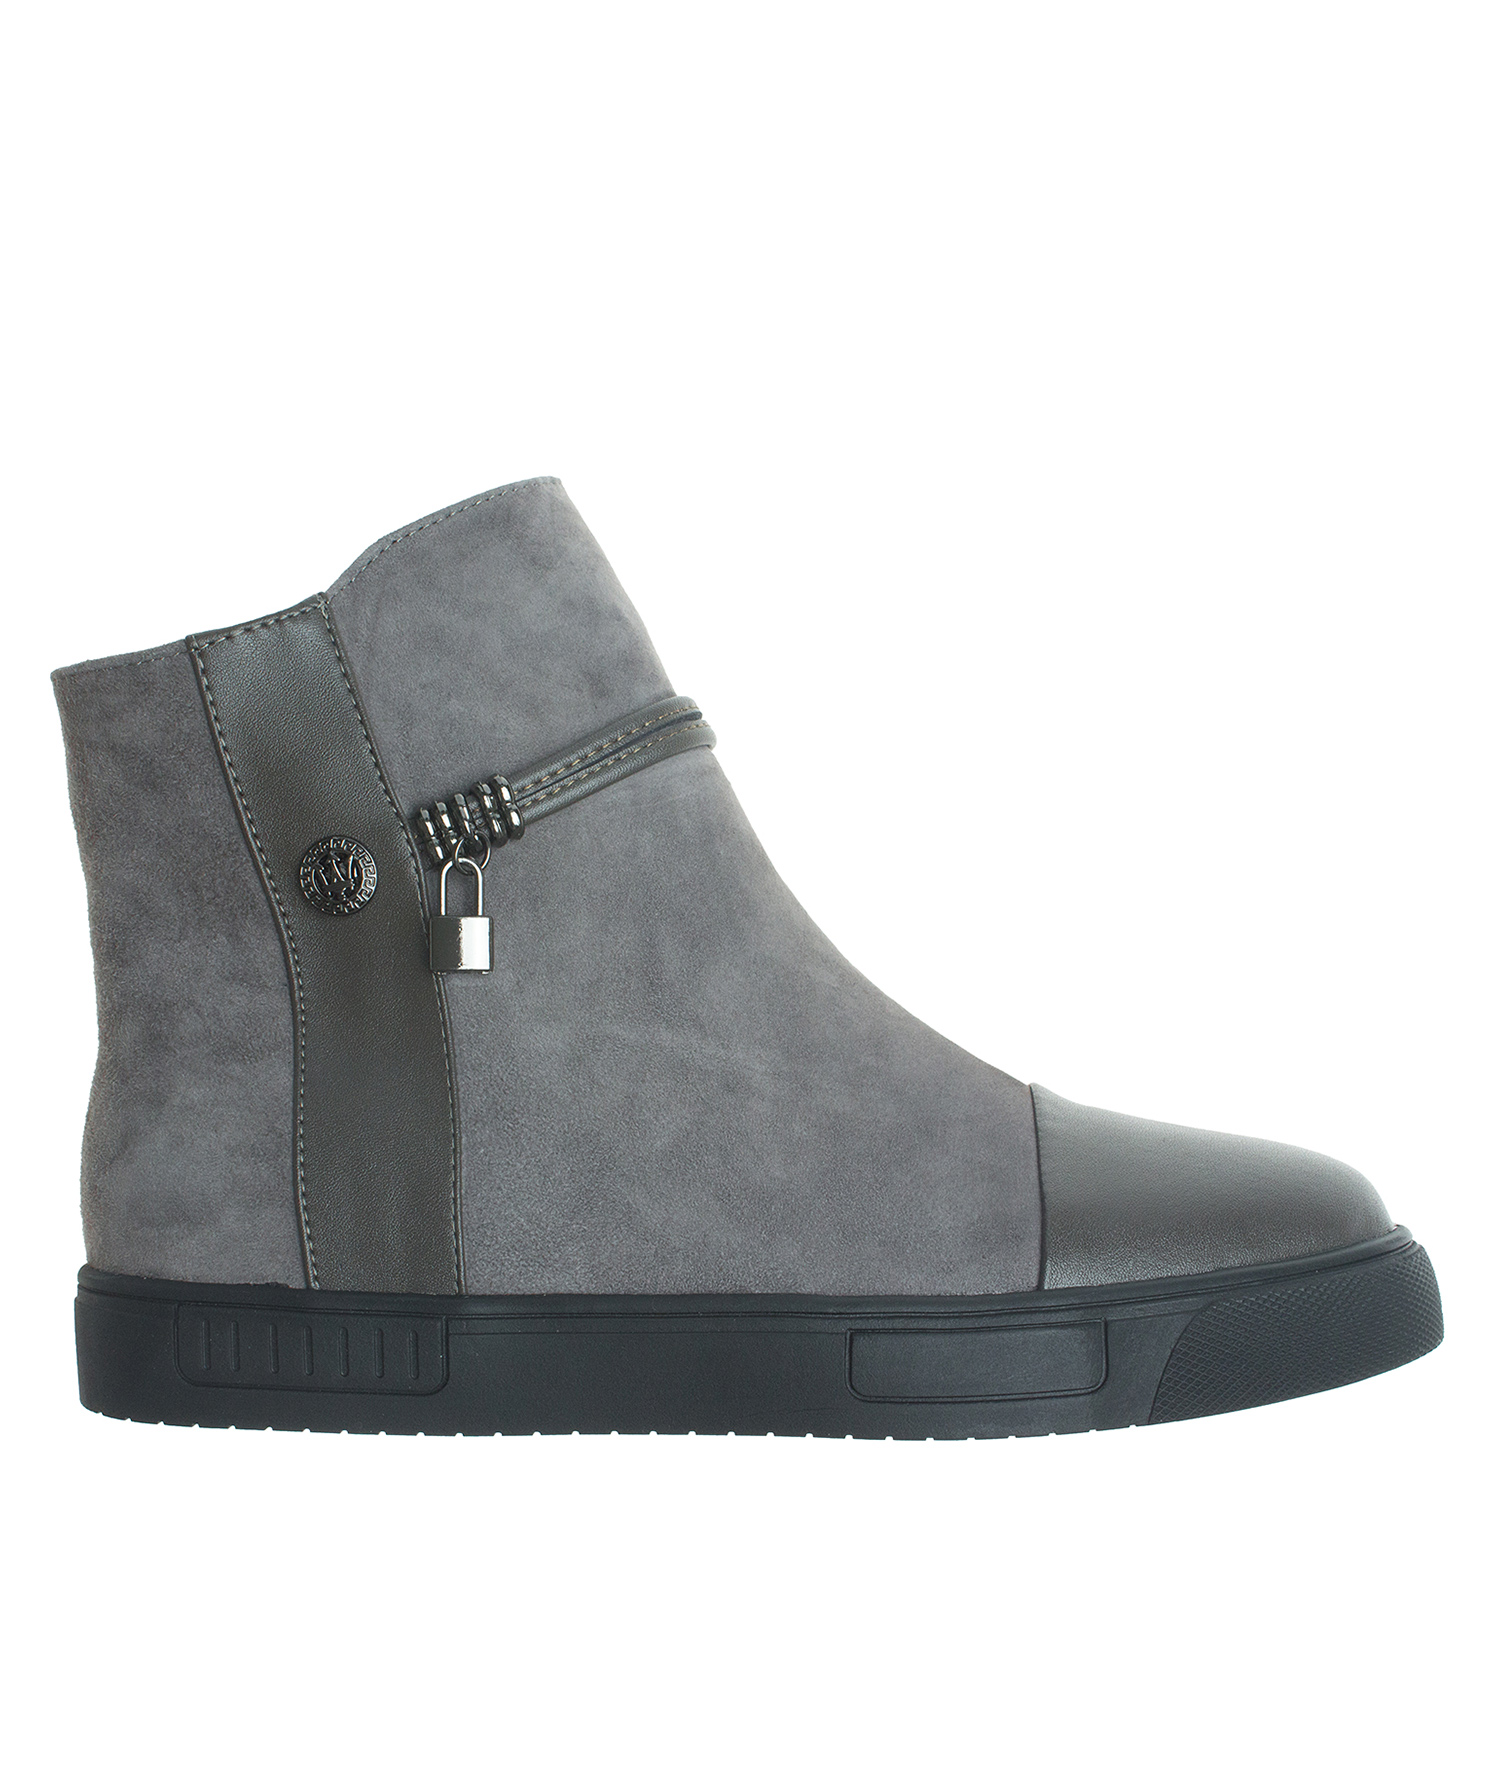 Lock Sneaker Ankle Boots Annakastleshoes Com